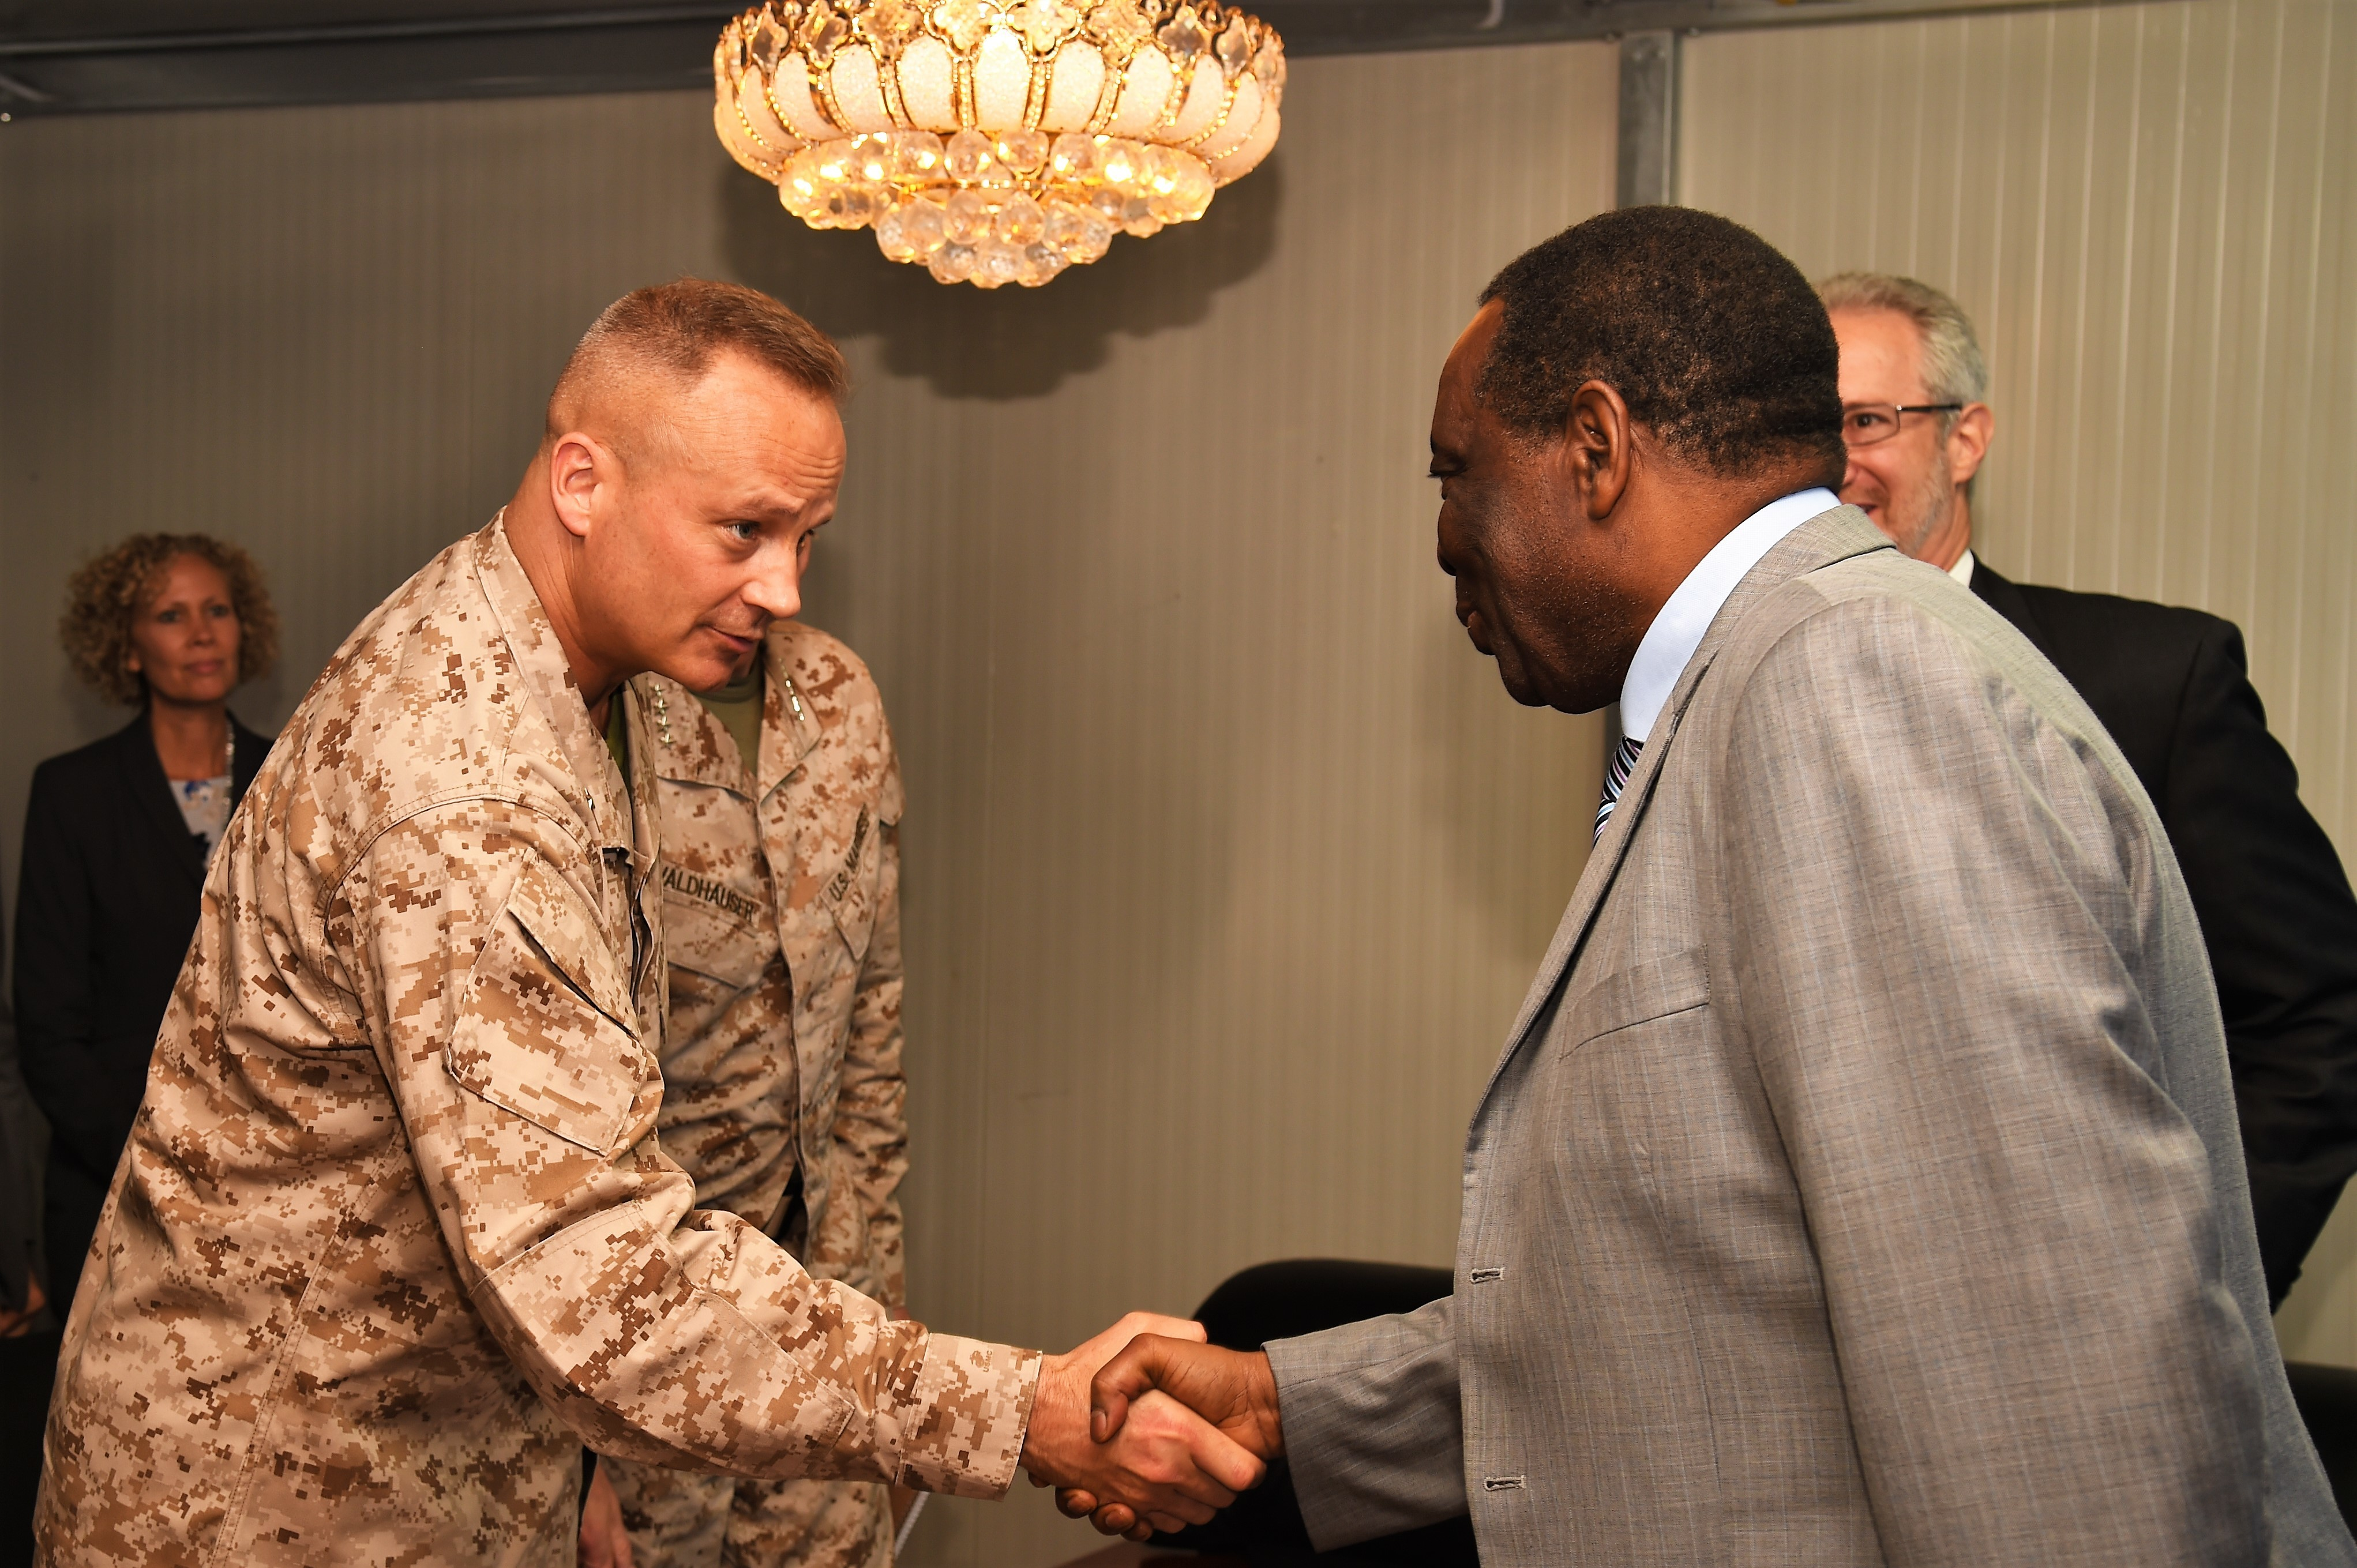 Task force leaders visit reinforces independent somali defense download image link m4hsunfo